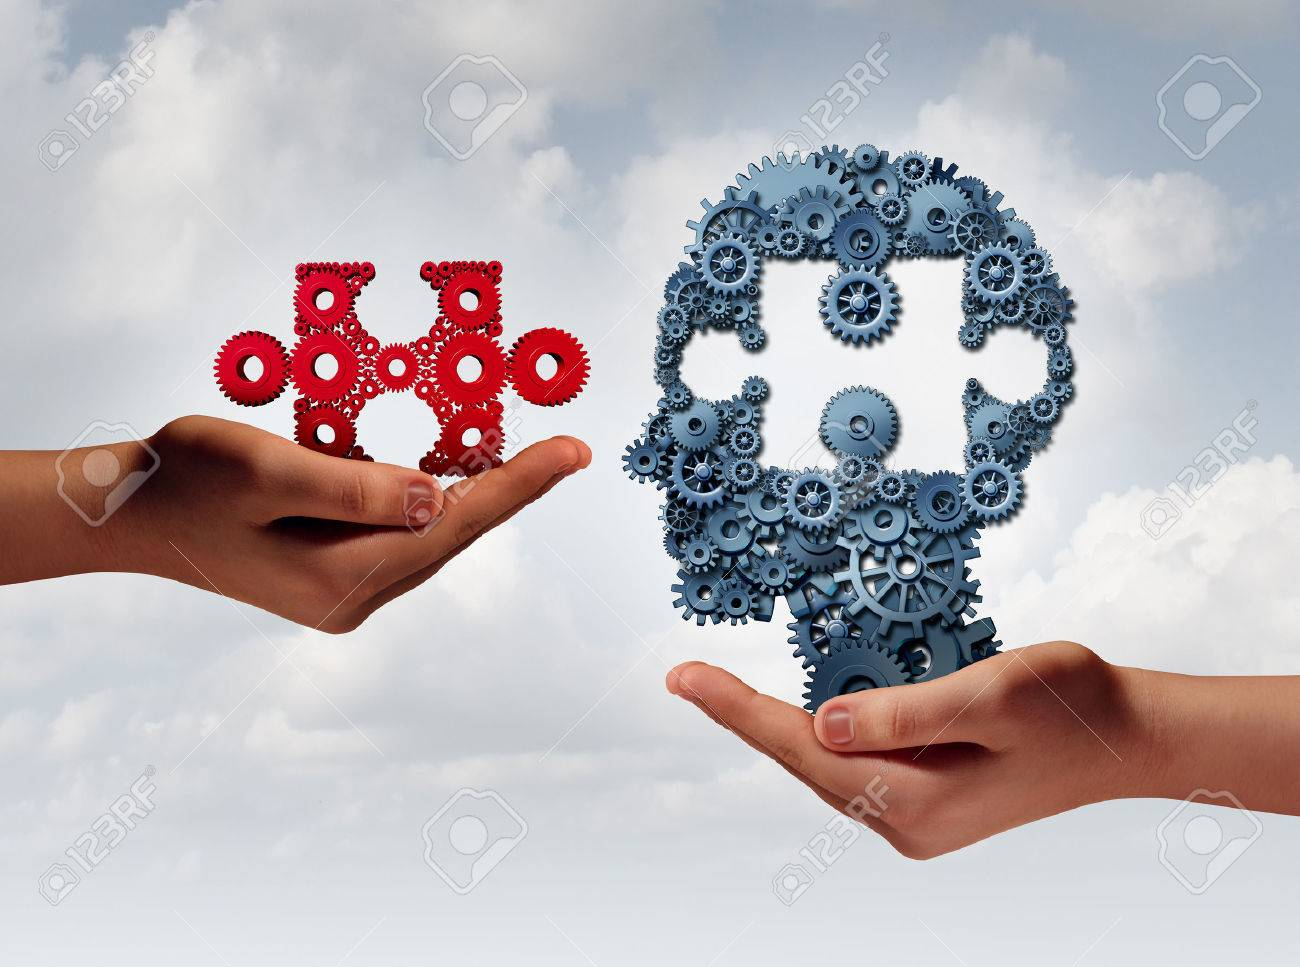 Concept of business training and skill development symbol as human hands holding a puzzle piece and gears shaped as a head as a technology or training metaphor with 3D illustration elements. Stock Illustration - 56997803